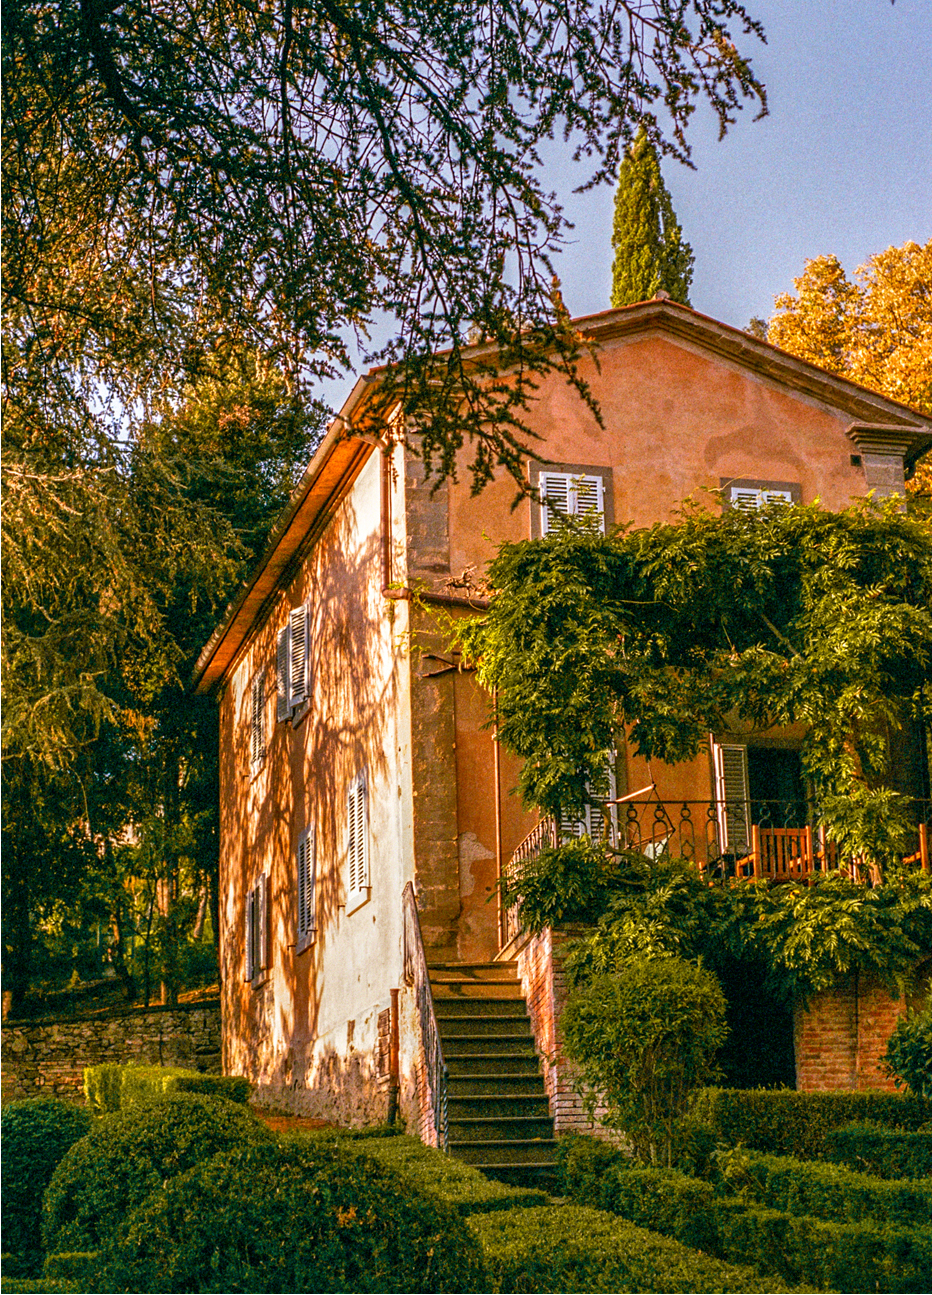 Photograph of the exterior of a country house in Umbria, Italy, captured by photographer Charlotte Bland.